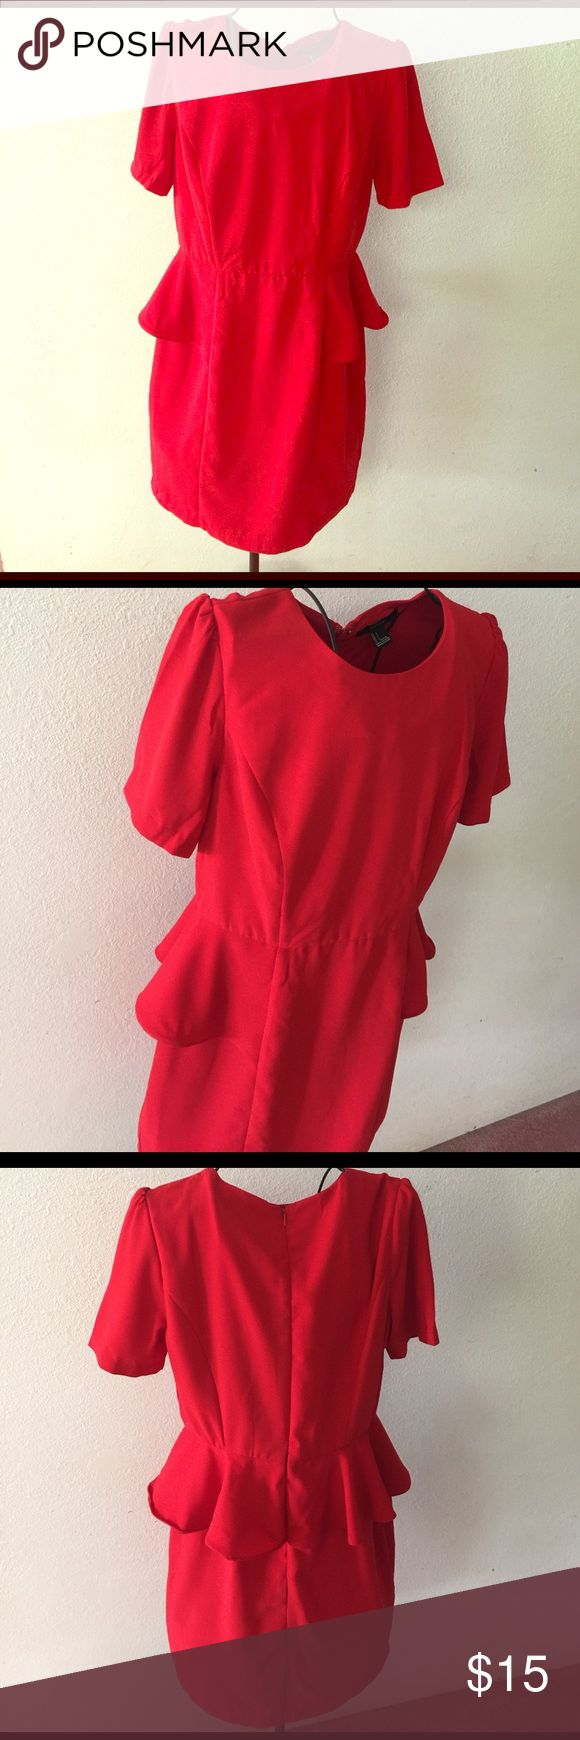 Classic Red Peplum Dress By Forever 21 Like new - never worn! 100% polyester, above knee, empire waste, longer short sleeved, and not to mention a beauty for all occasions. Vintage throw back. Forever 21 Dresses Mini